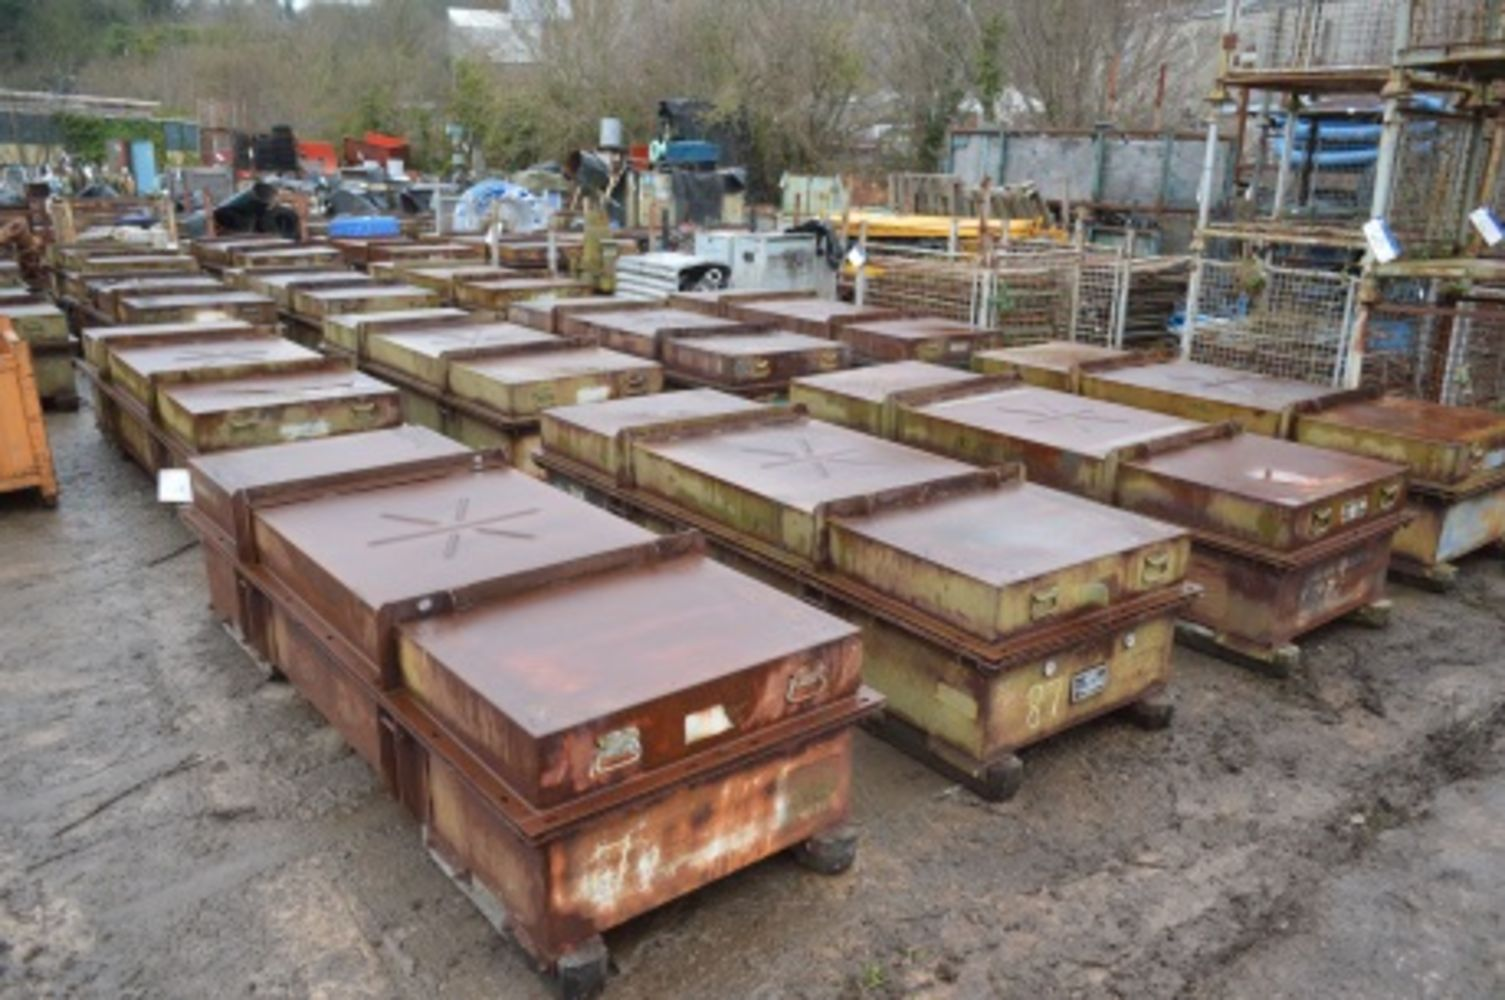 TWO DAY Online Auction - Industrial Plant & Equipment, Surplus Ex Army & Navy Stocks & Consumables (circa 1200 lots)